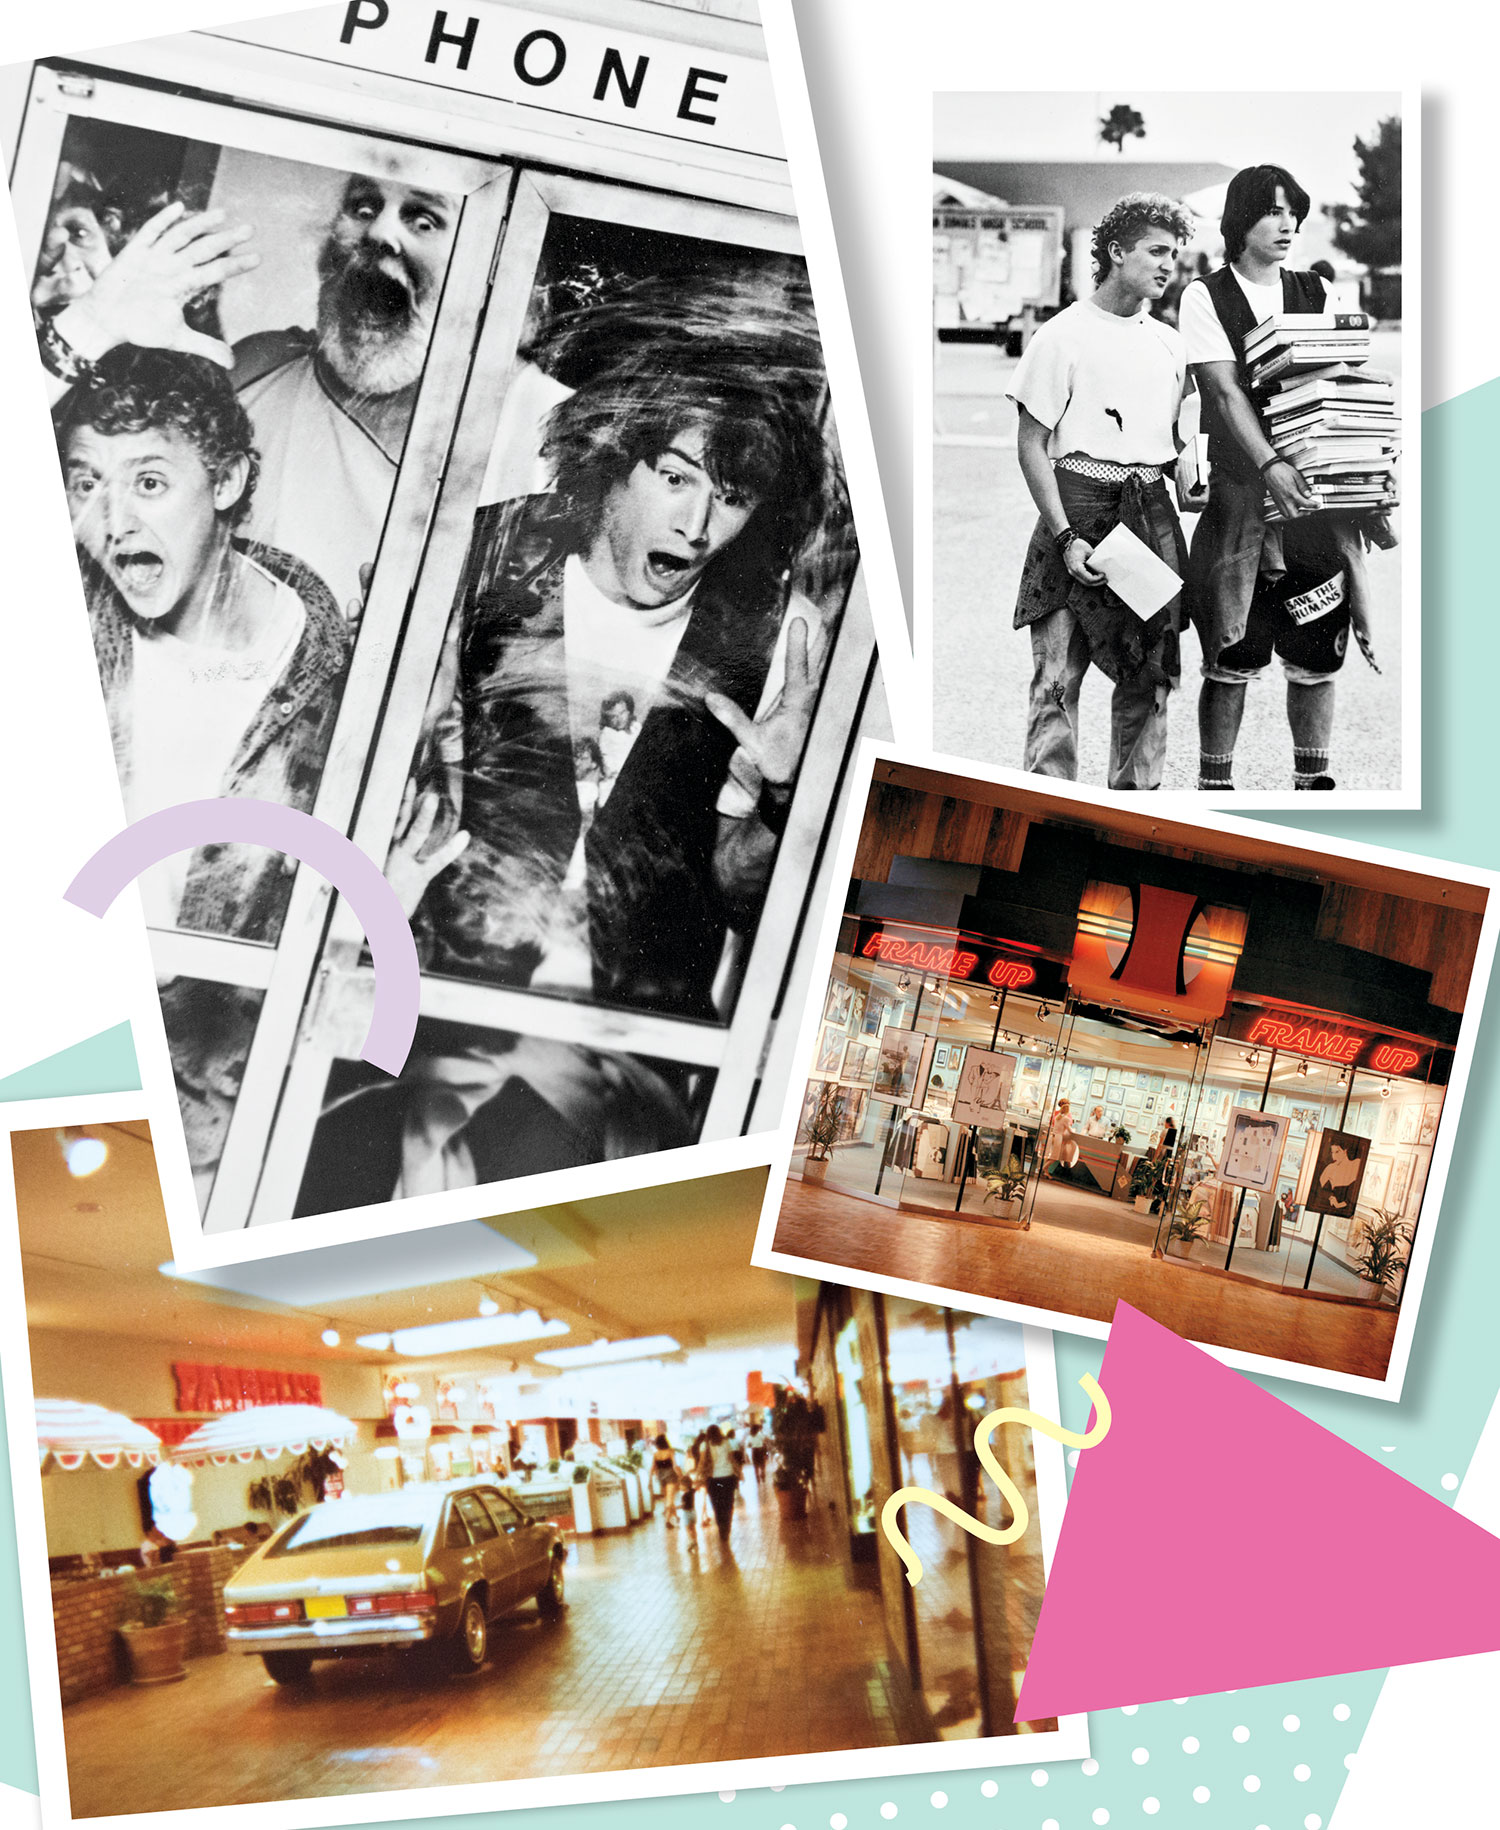 Clockwise from top left: Publicity photos of Bill and Ted's Excellent Adventure; Paradise Valley Mall Frame Up storefront, with a print by '80s icon Patrick Nagel in the window; Chevy car display in front of Farrell's Ice Cream Parlour at Chris-Town Mall; Photos courtesy Orion PIctures; Macerich; Grossman Company Properties